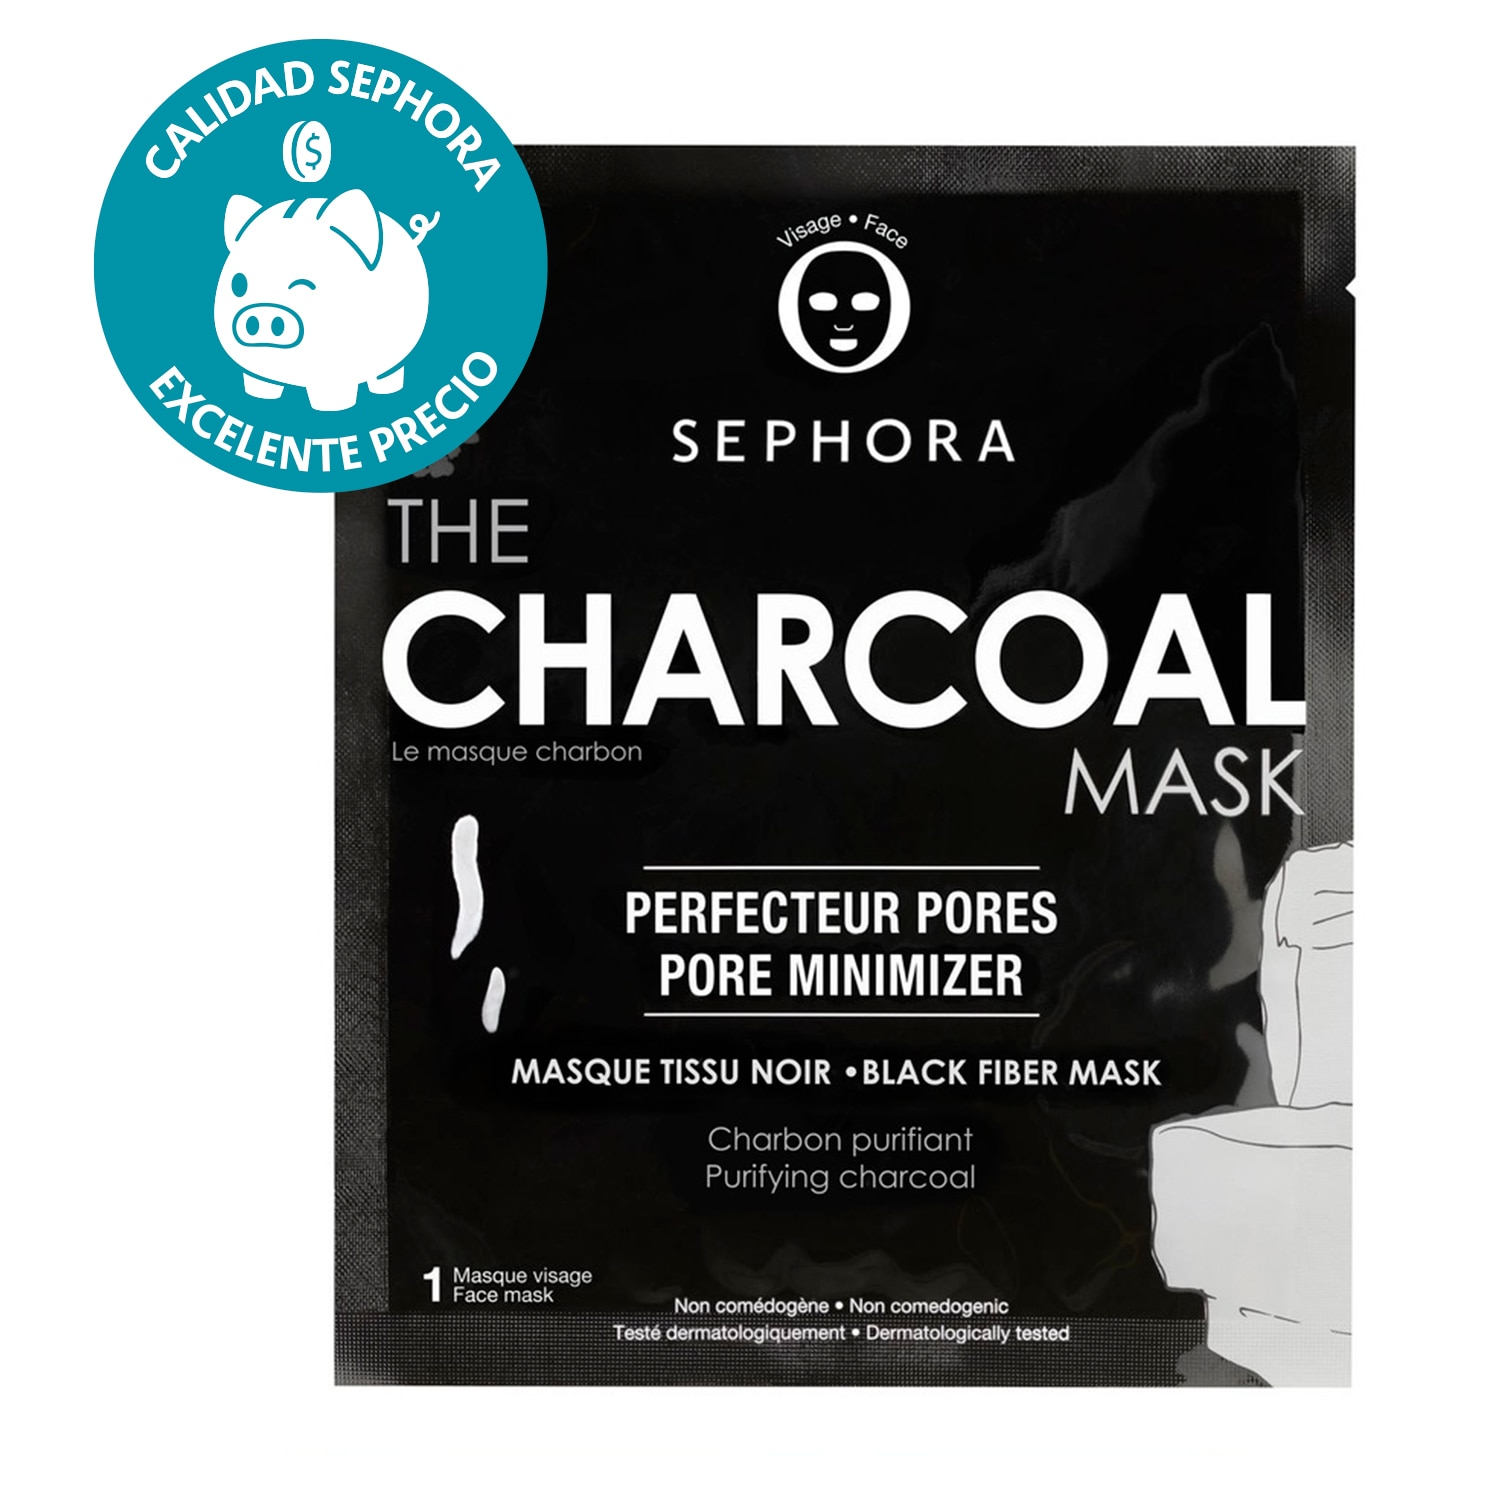 THE CHARCOAL MASK